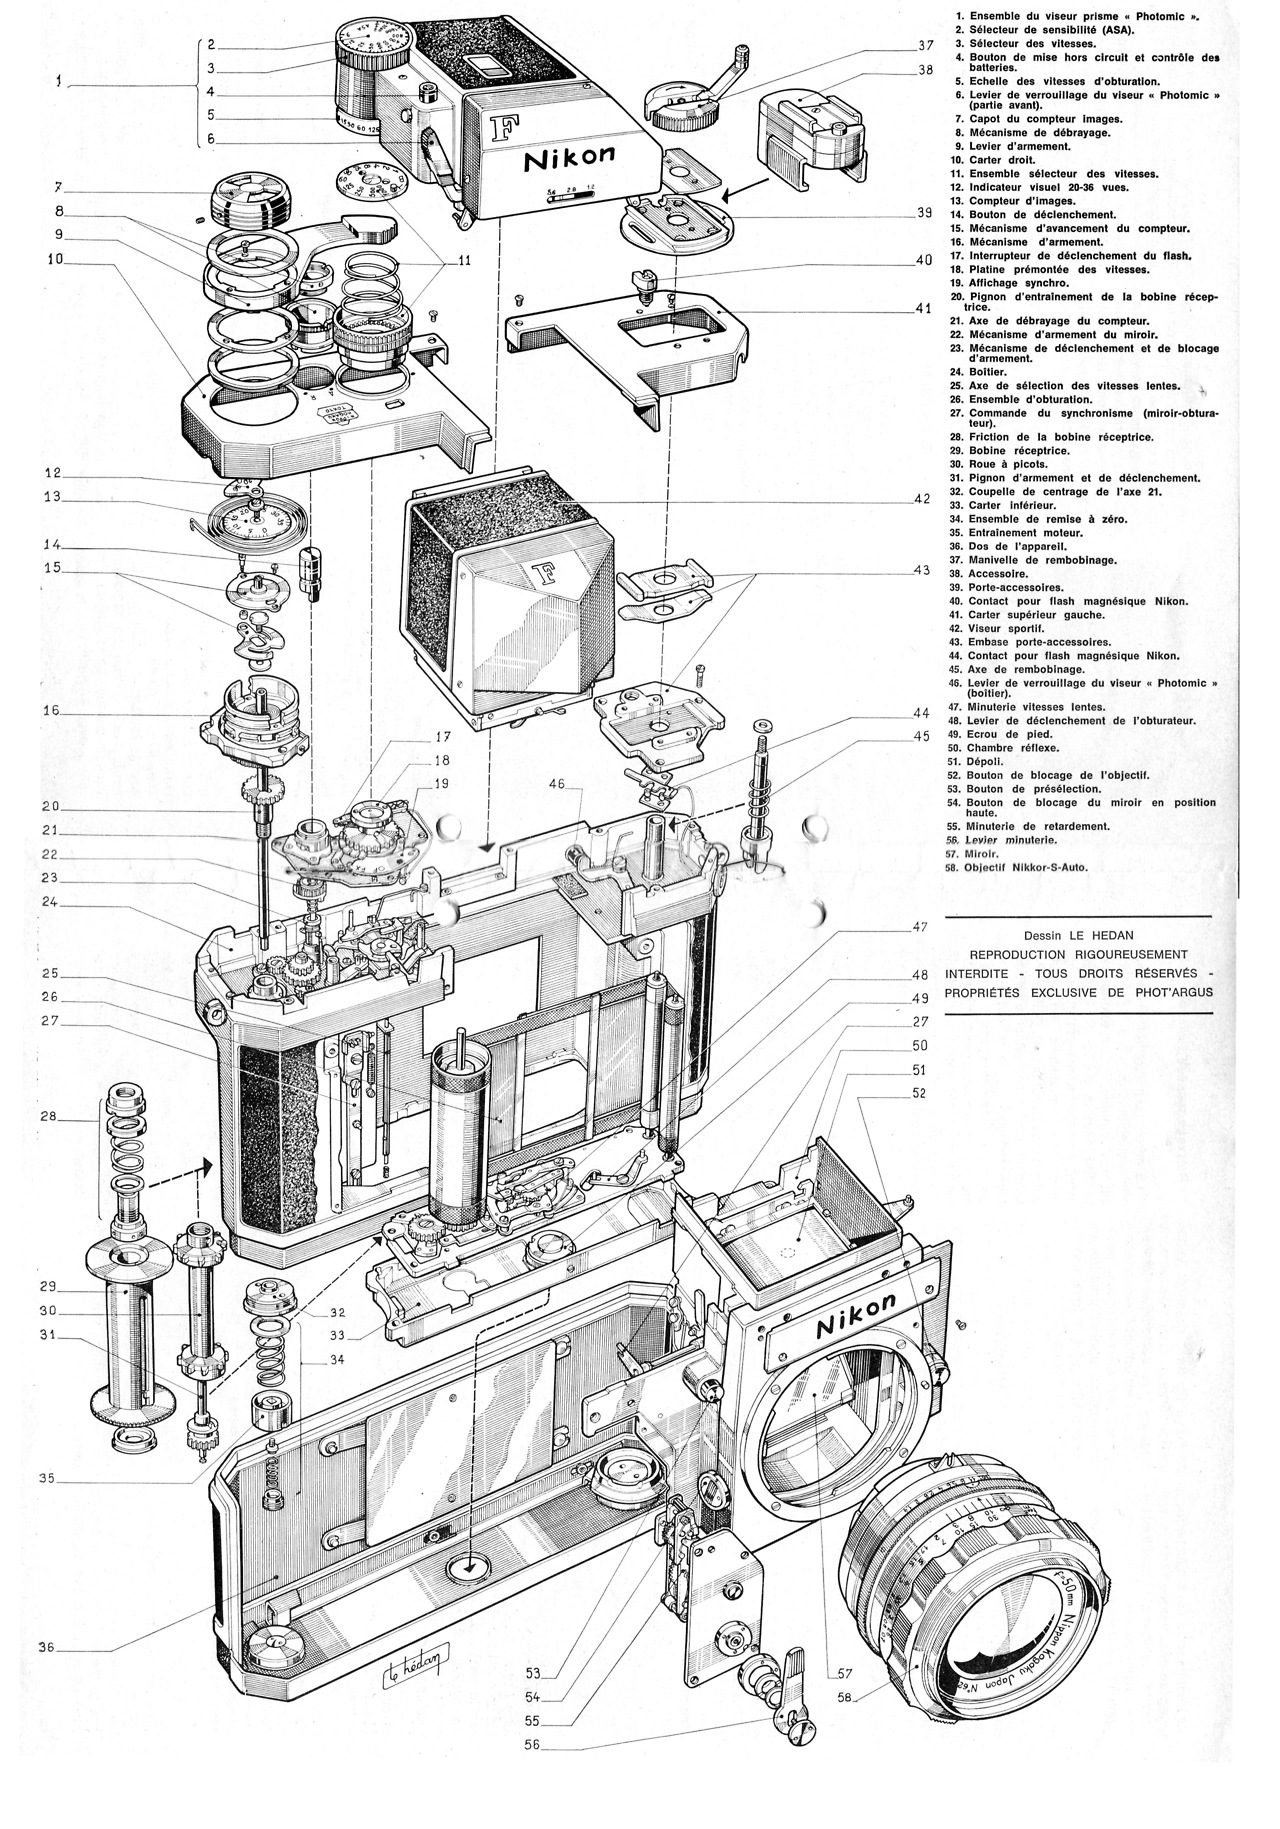 Nikon Camera Parts Diagram Nikon Camera Operation